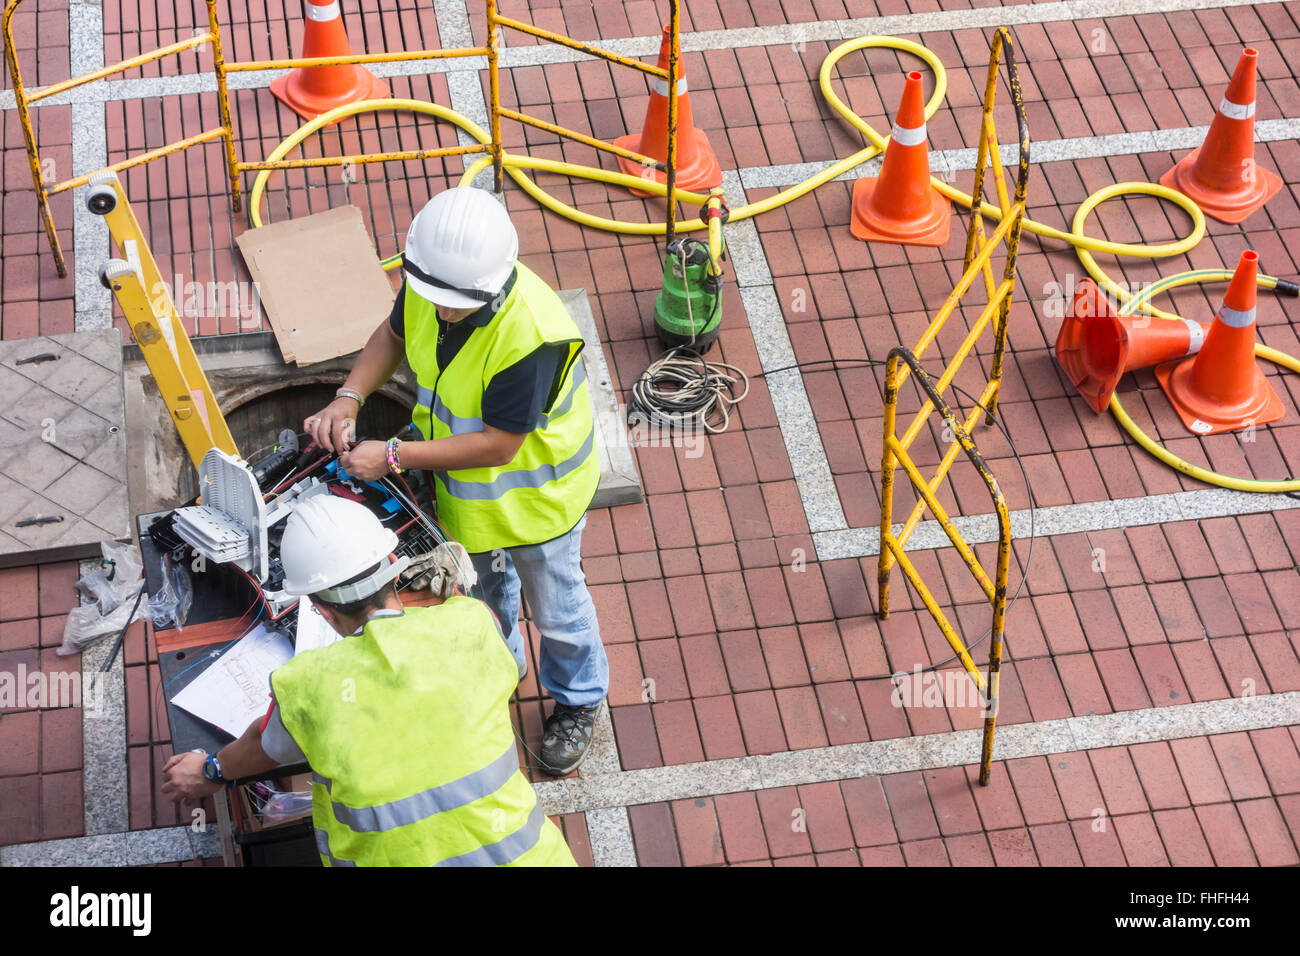 Telephone engineers (male and female) installing fibre optic cables. - Stock Image